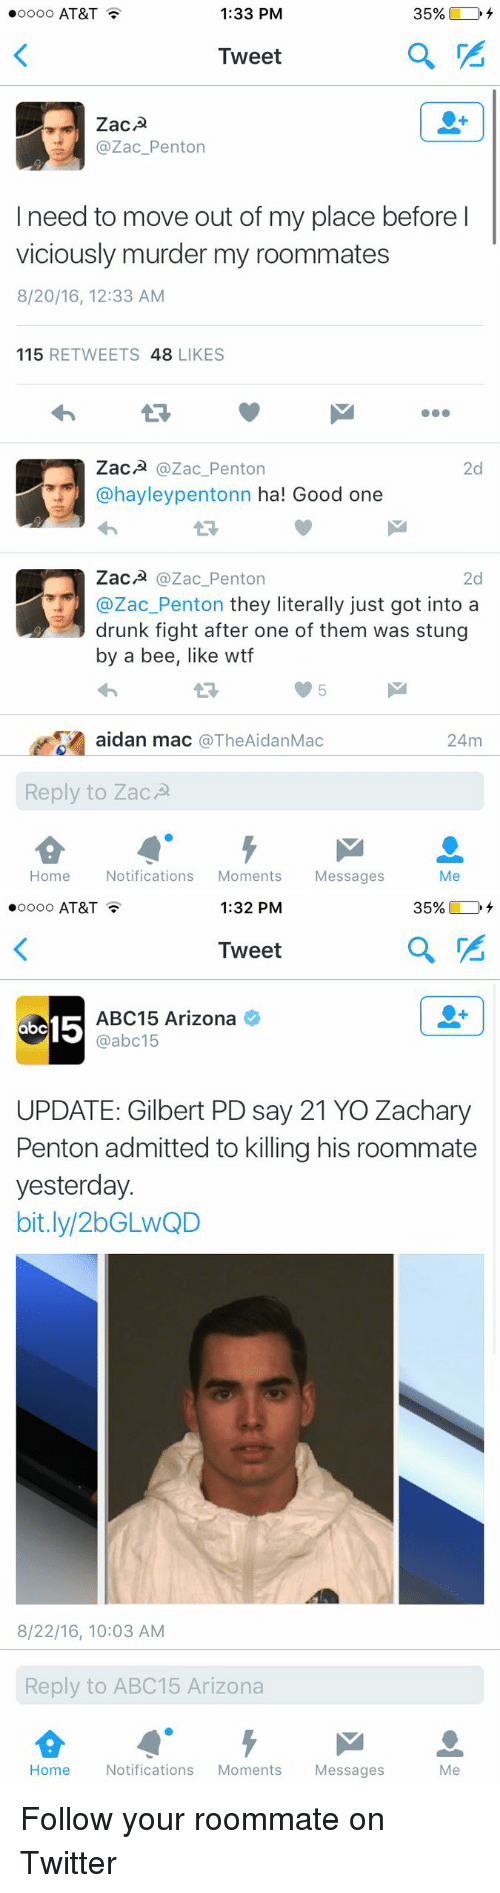 Abc, Drunk, and Funny: 1:33 PM  oooo AT&T  Tweet  ZacA  Zac Penton  I need to move out of my place before l  viciously murder my roommates  8/20/16, 12:33 AM  115  RETWEETS 48  LIKES  ZacA  @Zac Penton  2d  @hayley pentonn ha! Good one  ZacA  Zac Penton  2d  Zac Penton they literally just got into a  drunk fight after one of them was stung  by a bee, like wtf  As aidan mac  The Aidan Mac  24m  Reply to ZacA  Home  Notifications  Moments  Messages  Me   1:32 PM  oooo AT&T  Tweet  15  ABC 15 Arizona  @abc15  ab  UPDATE: Gilbert PD say 21 YOZachary  Penton admitted to killing his roommate  yesterday.  bit.ly 2bGLwQD  8/22/16, 10:03 AM  Reply to ABC15 Arizona  Home  Notifications  Moments  Messages  Me Follow your roommate on Twitter